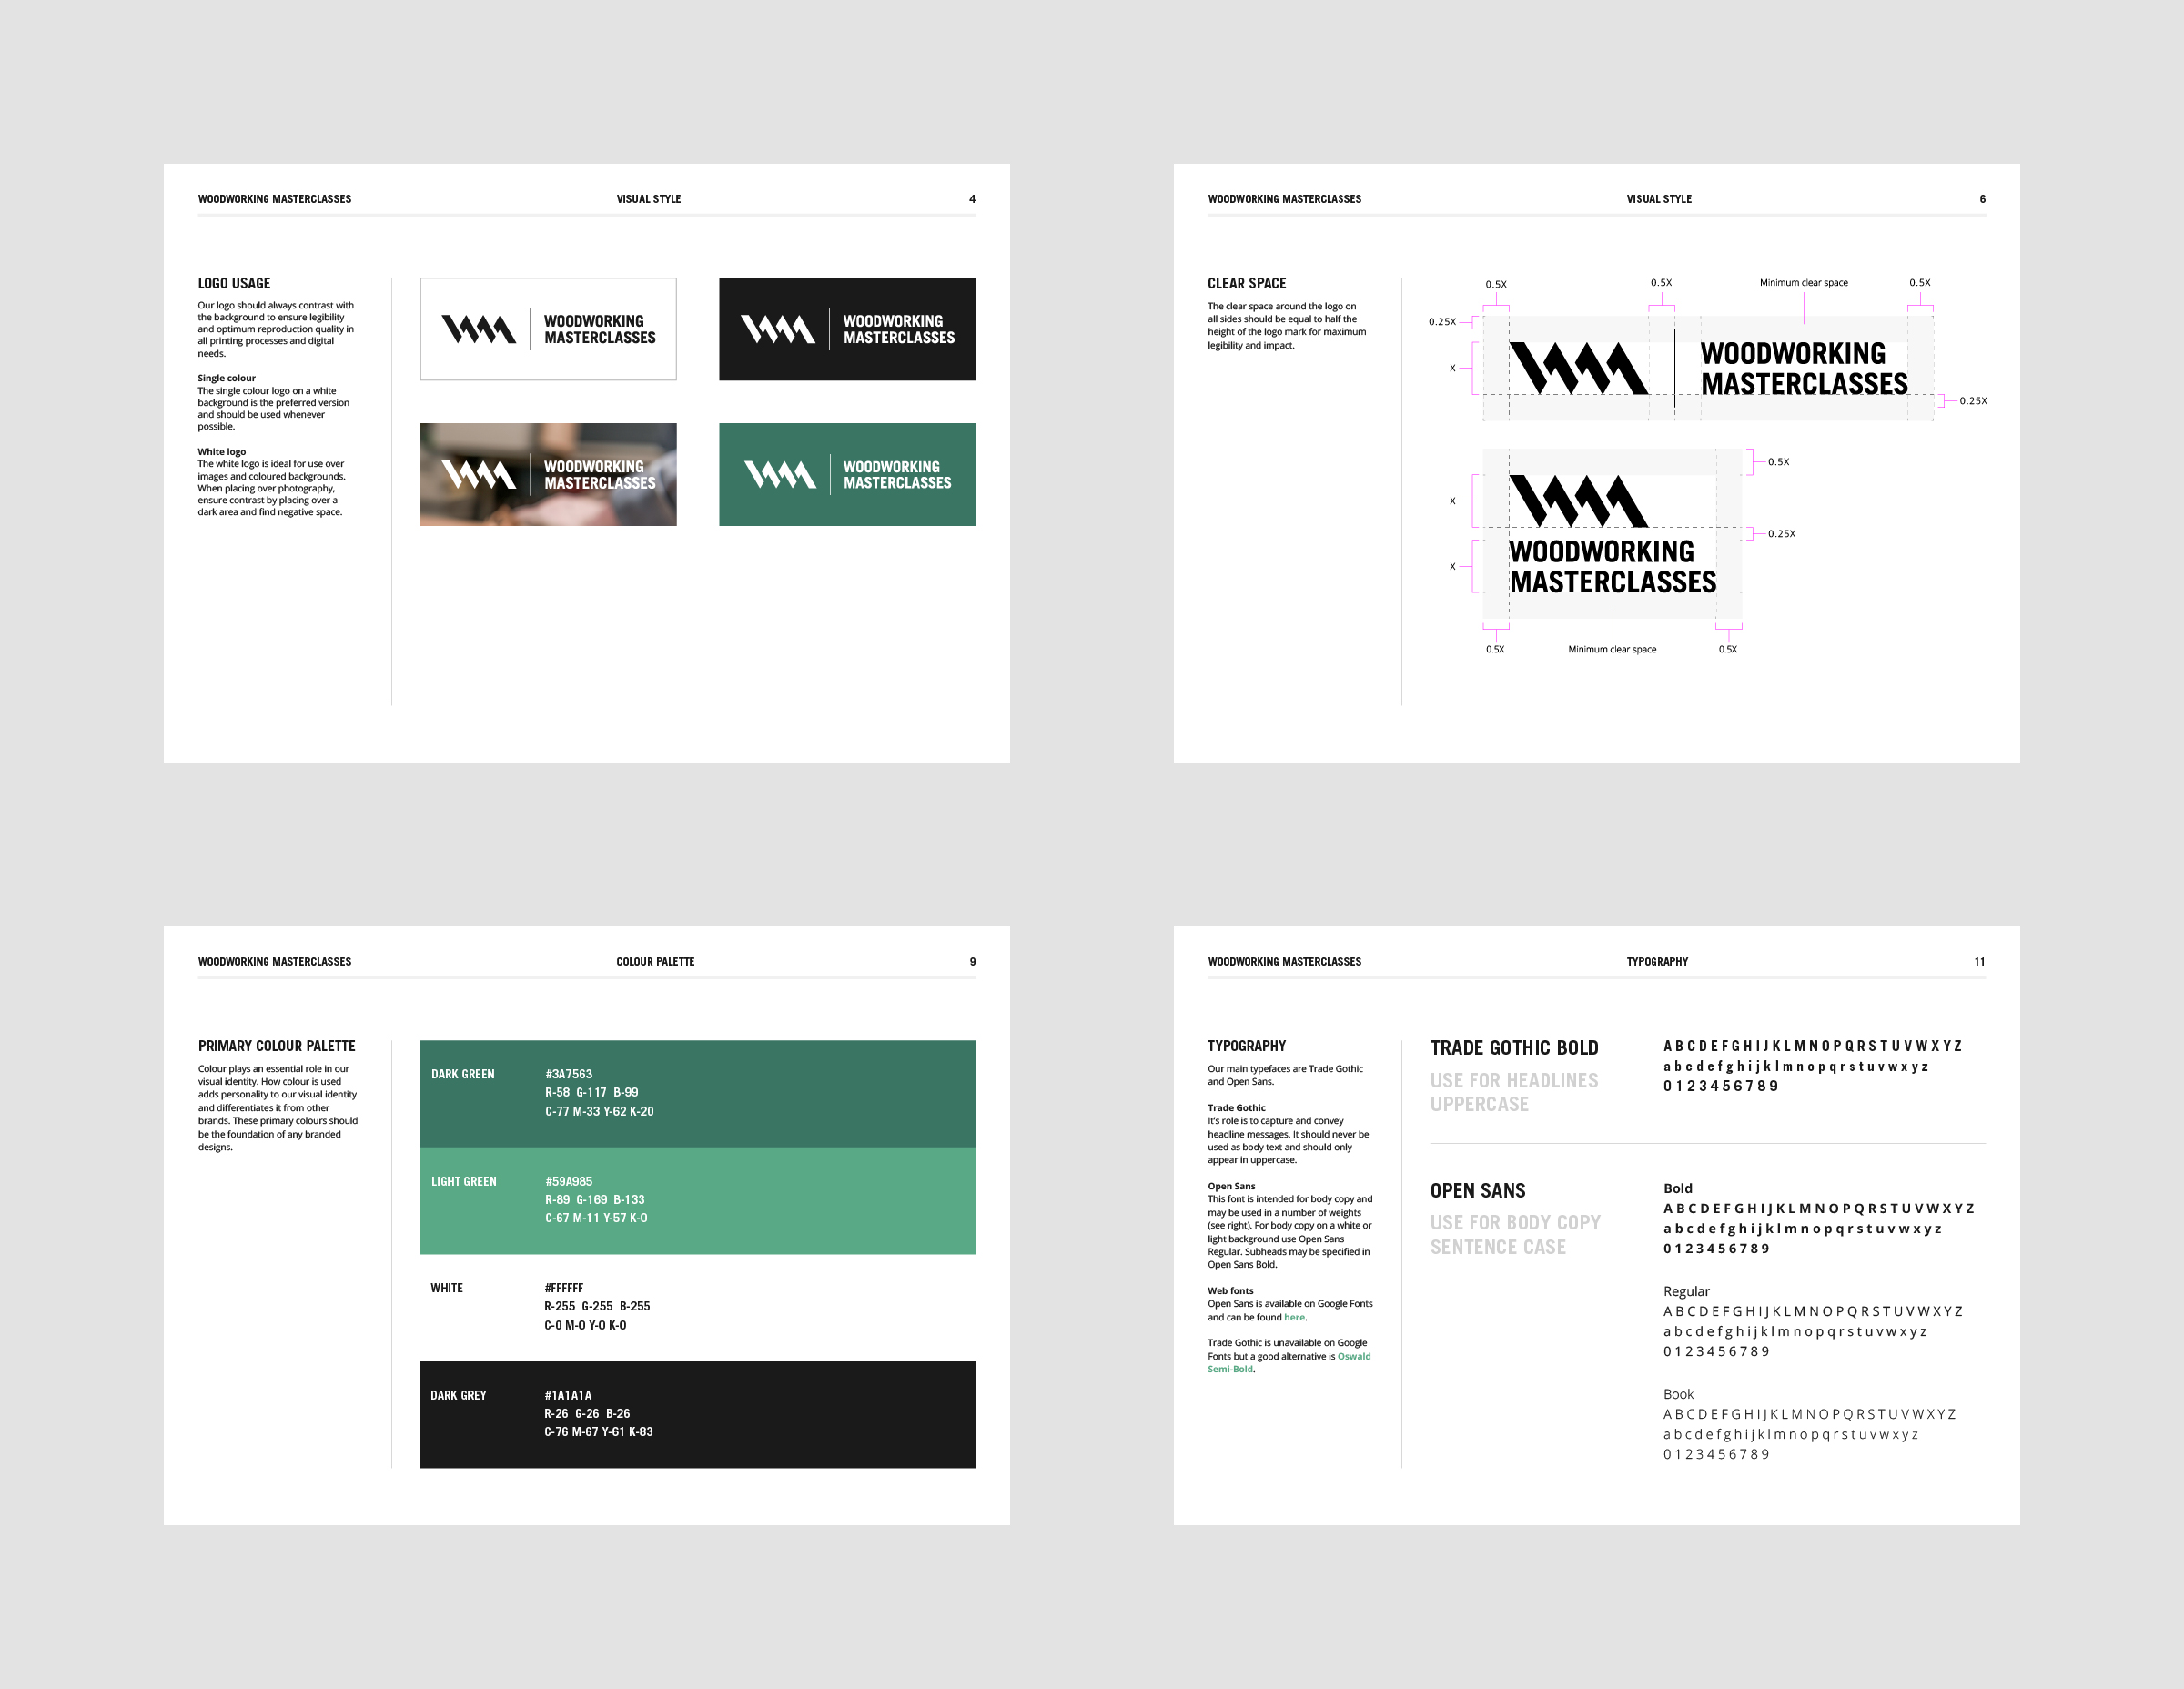 4 pages of brand guidelines